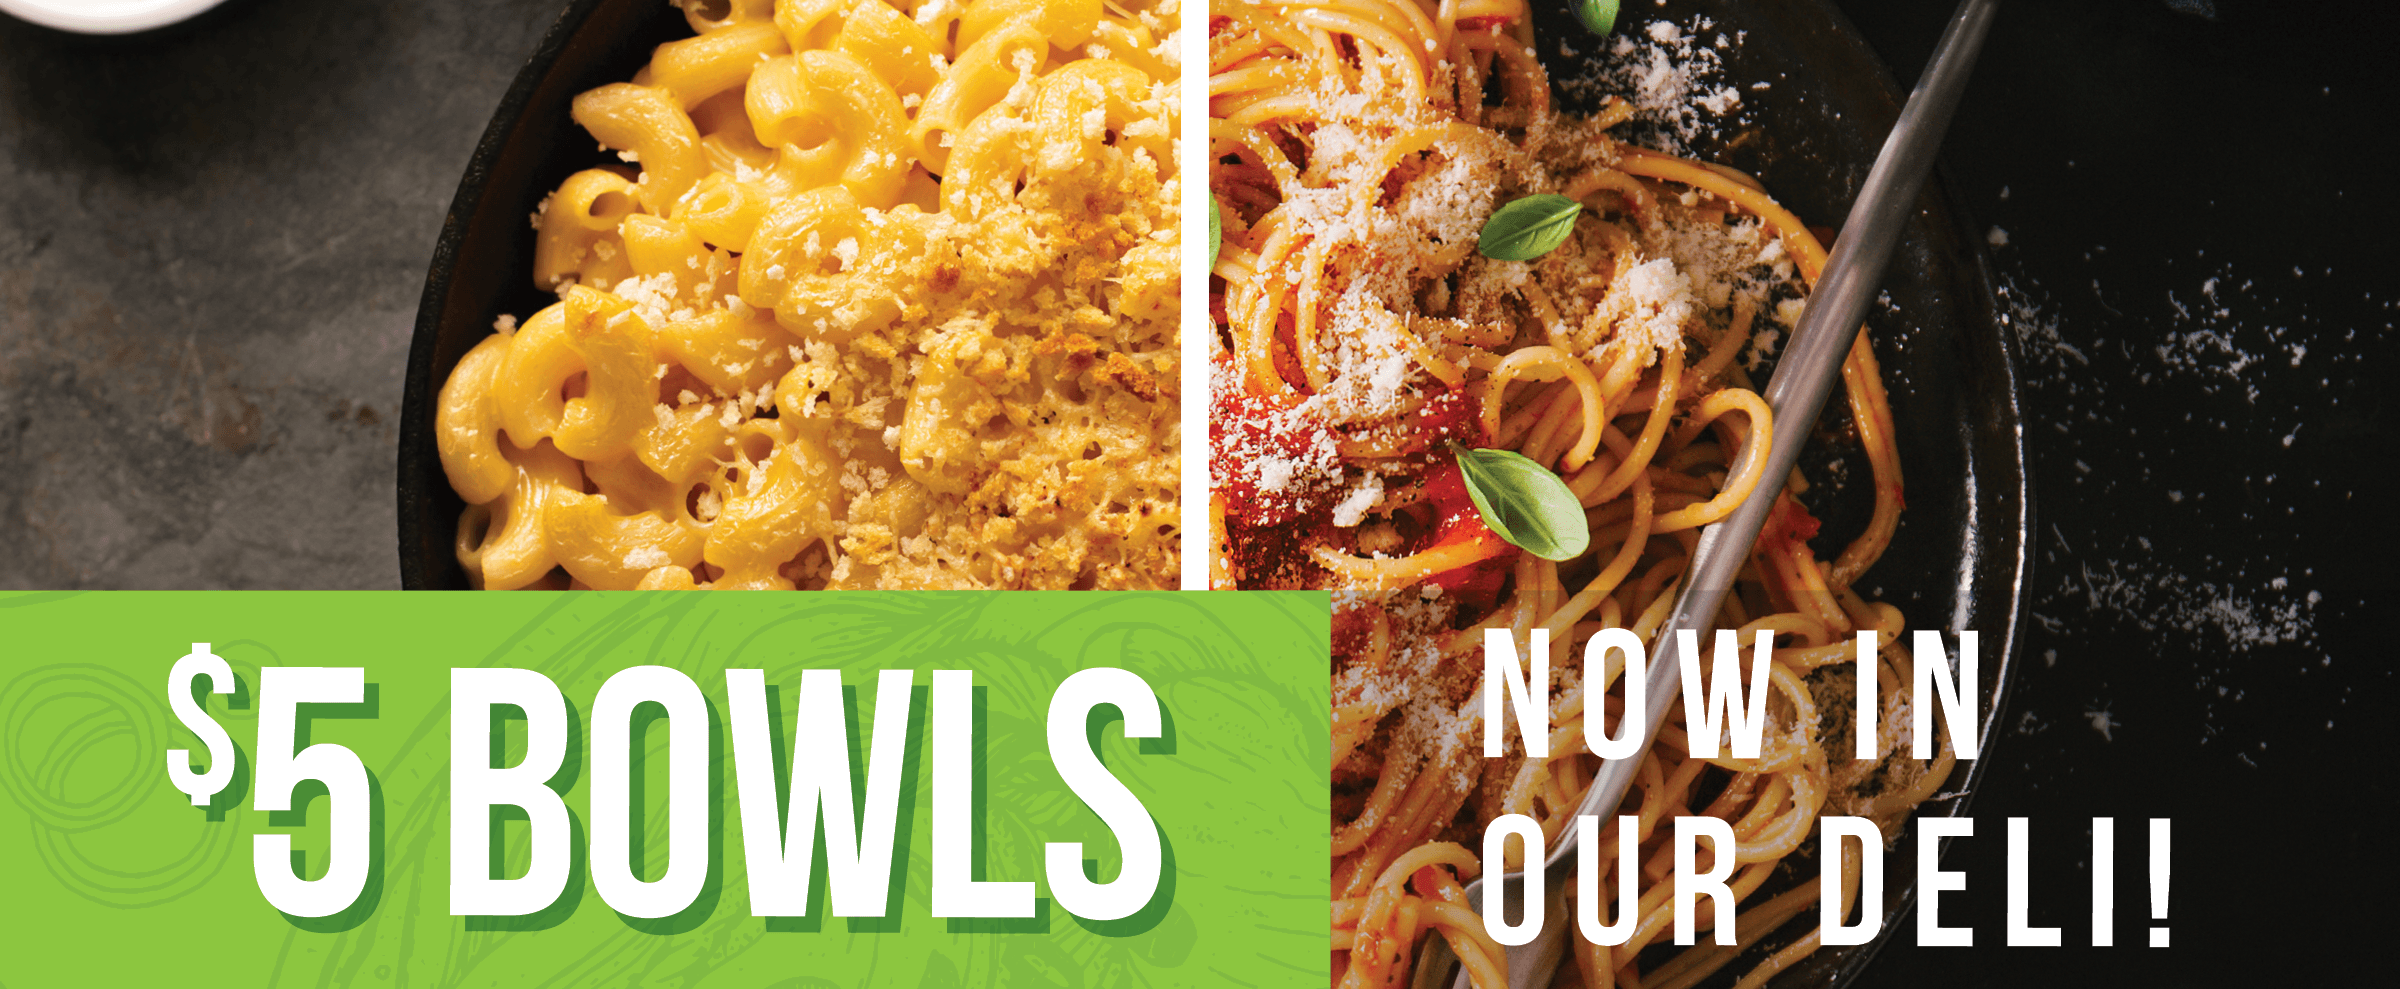 $5 Bowls Now In Our Deli